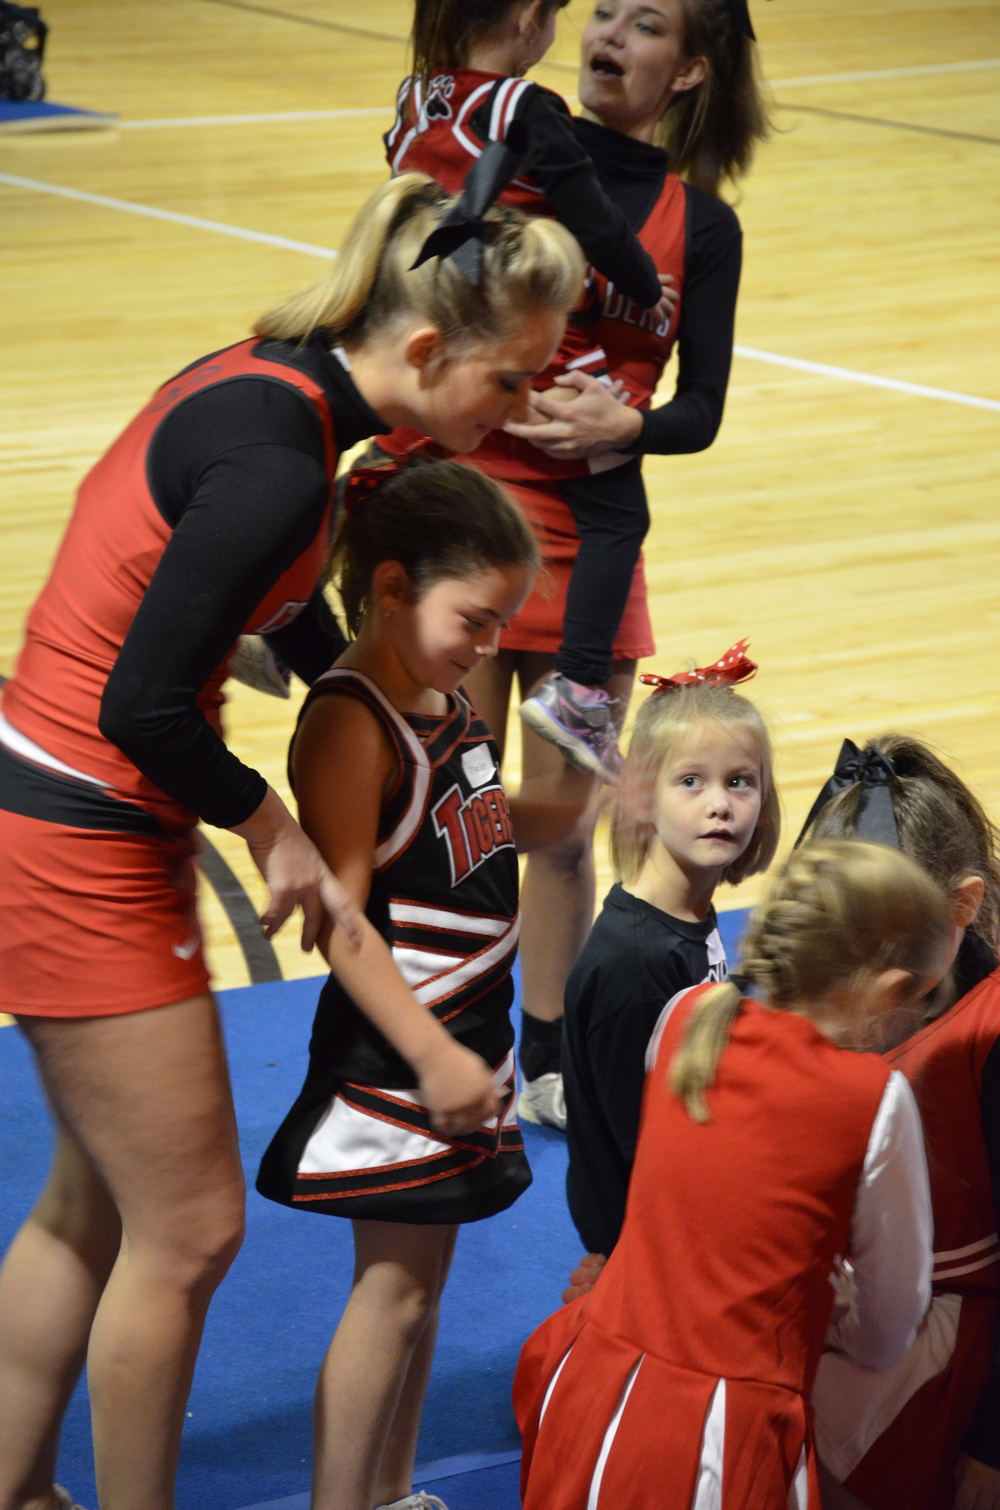 This little girl is ready to be lifted into the air by an NGU cheerleader.